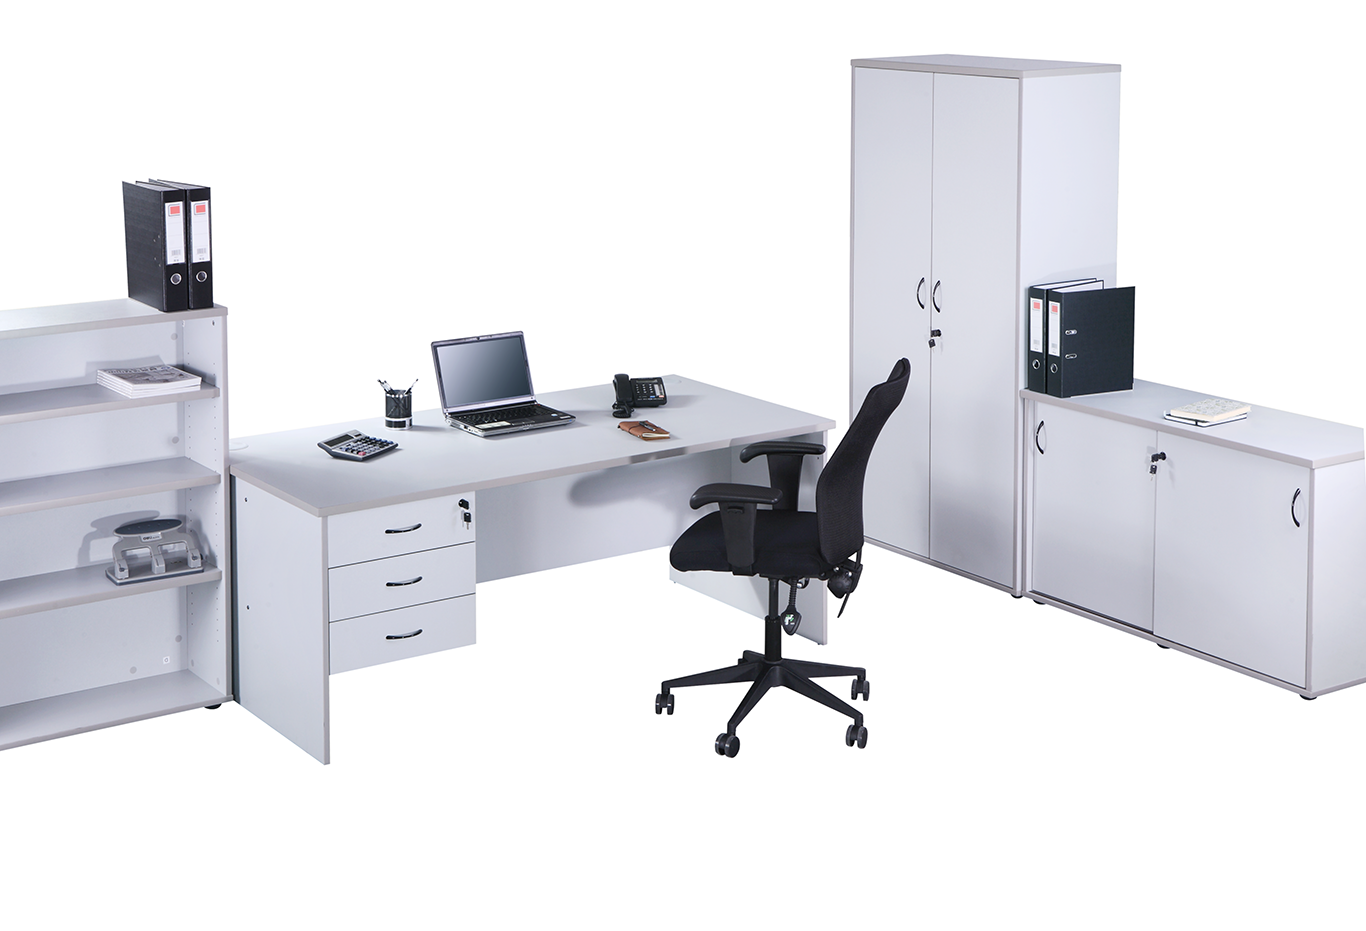 complete office fit-out sample